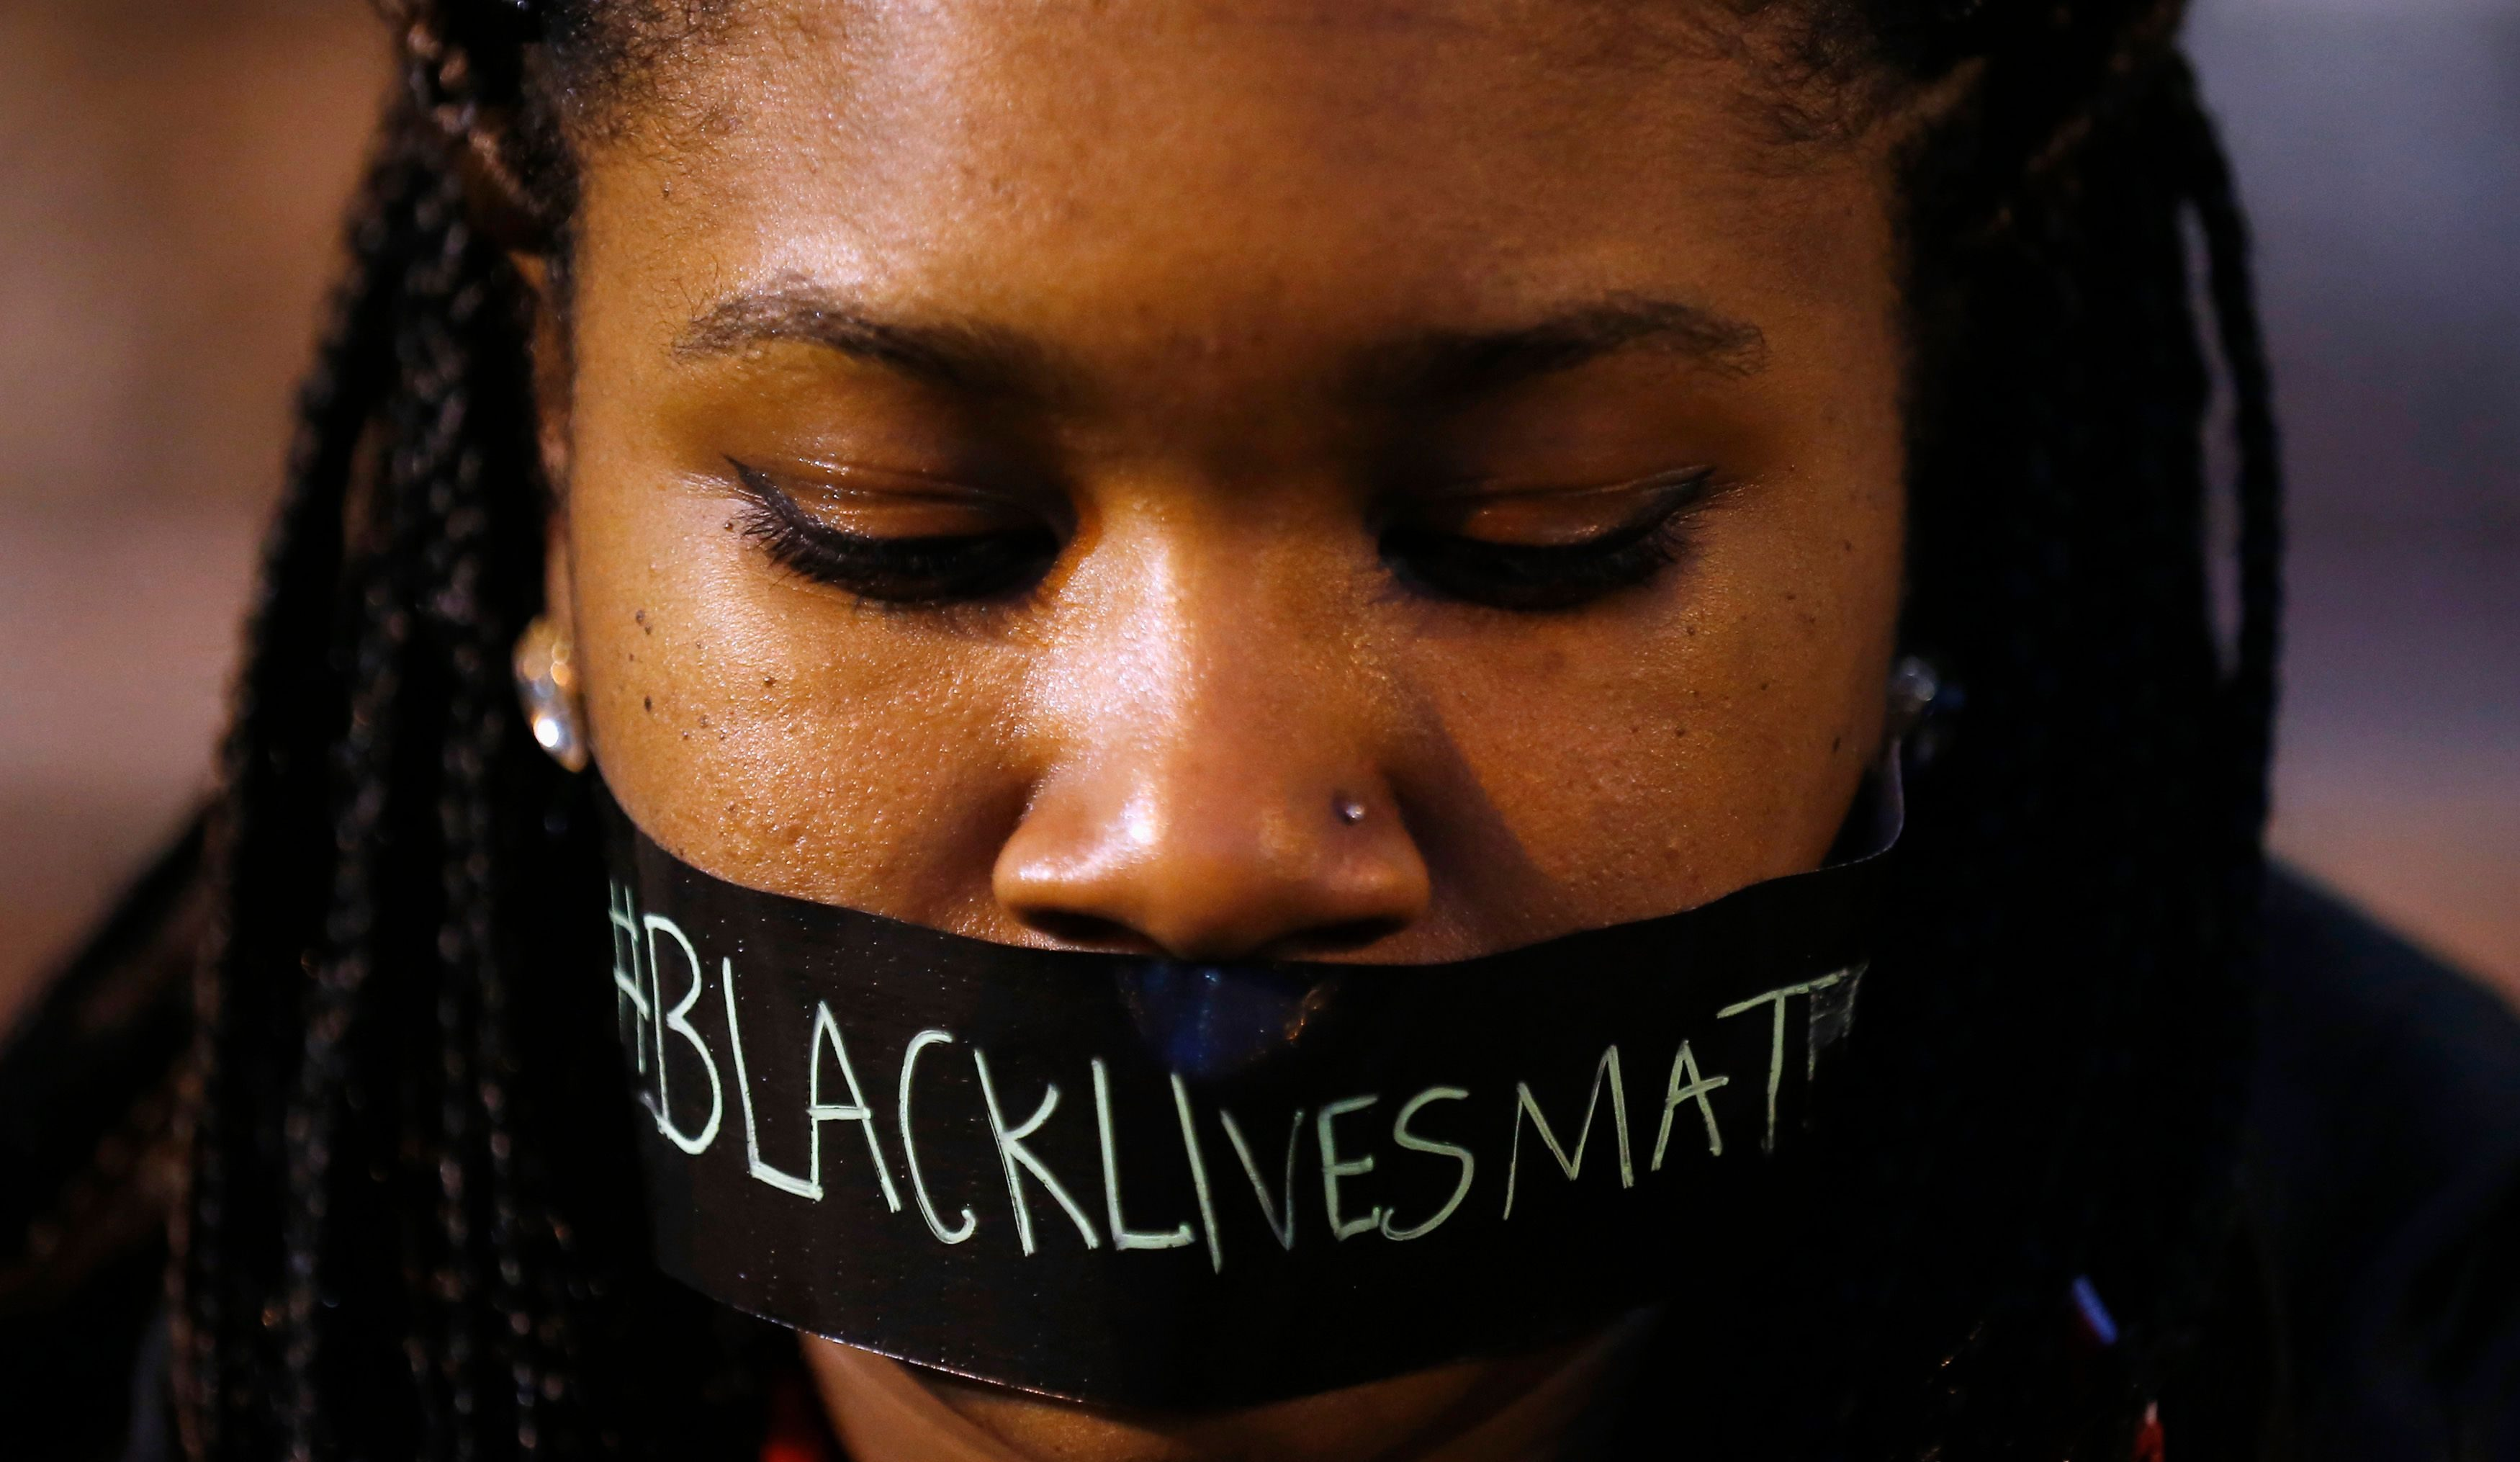 A protester wears tape over her mouth during a silent demonstration in St. Louis, Missouri.